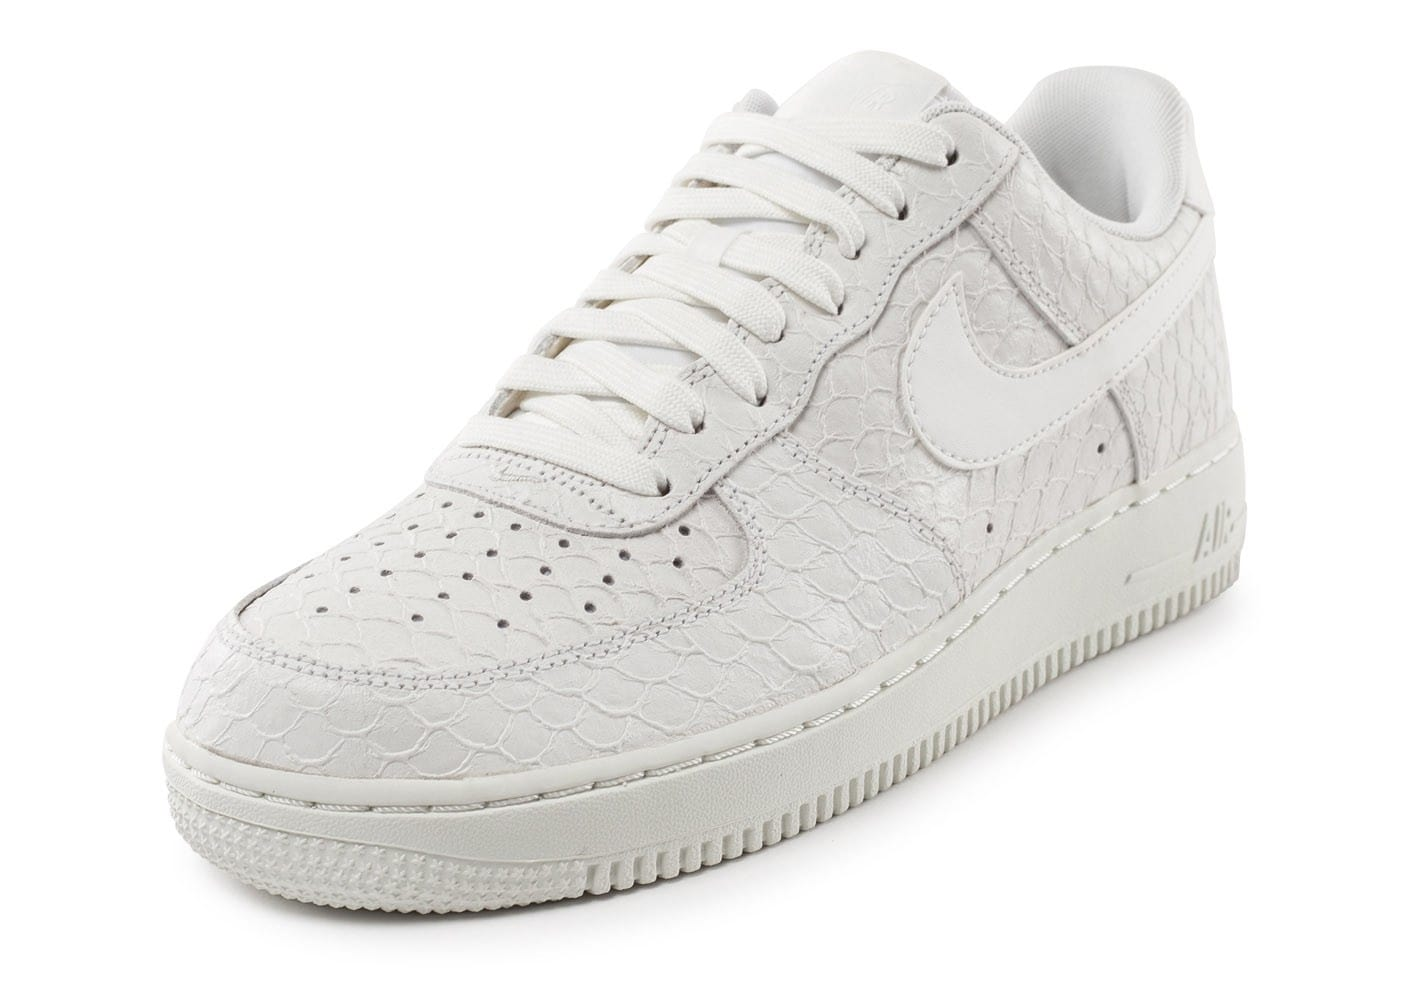 Nike Air Force 1 07 LV8 Snake blanche Chaussures Baskets